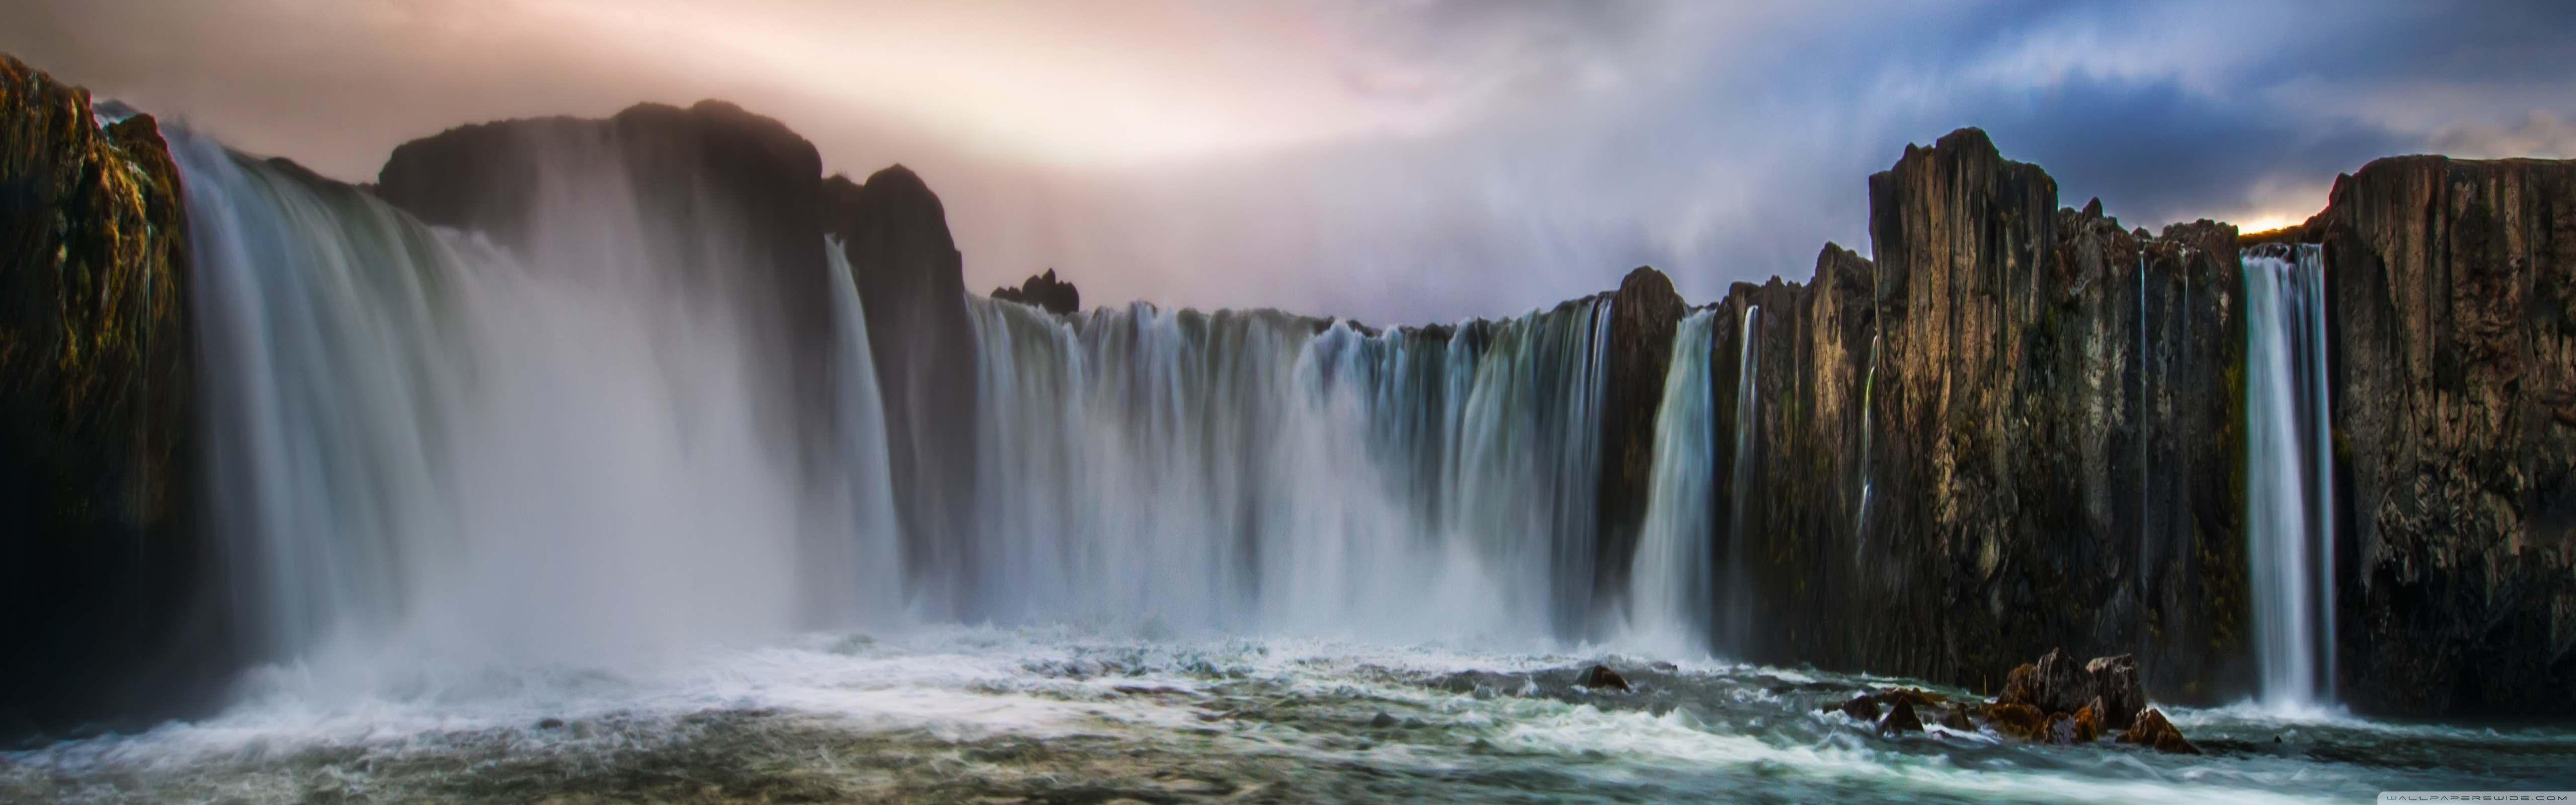 Waterfall In Iceland 4K HD Desktop Wallpaper for 4K Ultra HD TV 5120x1600